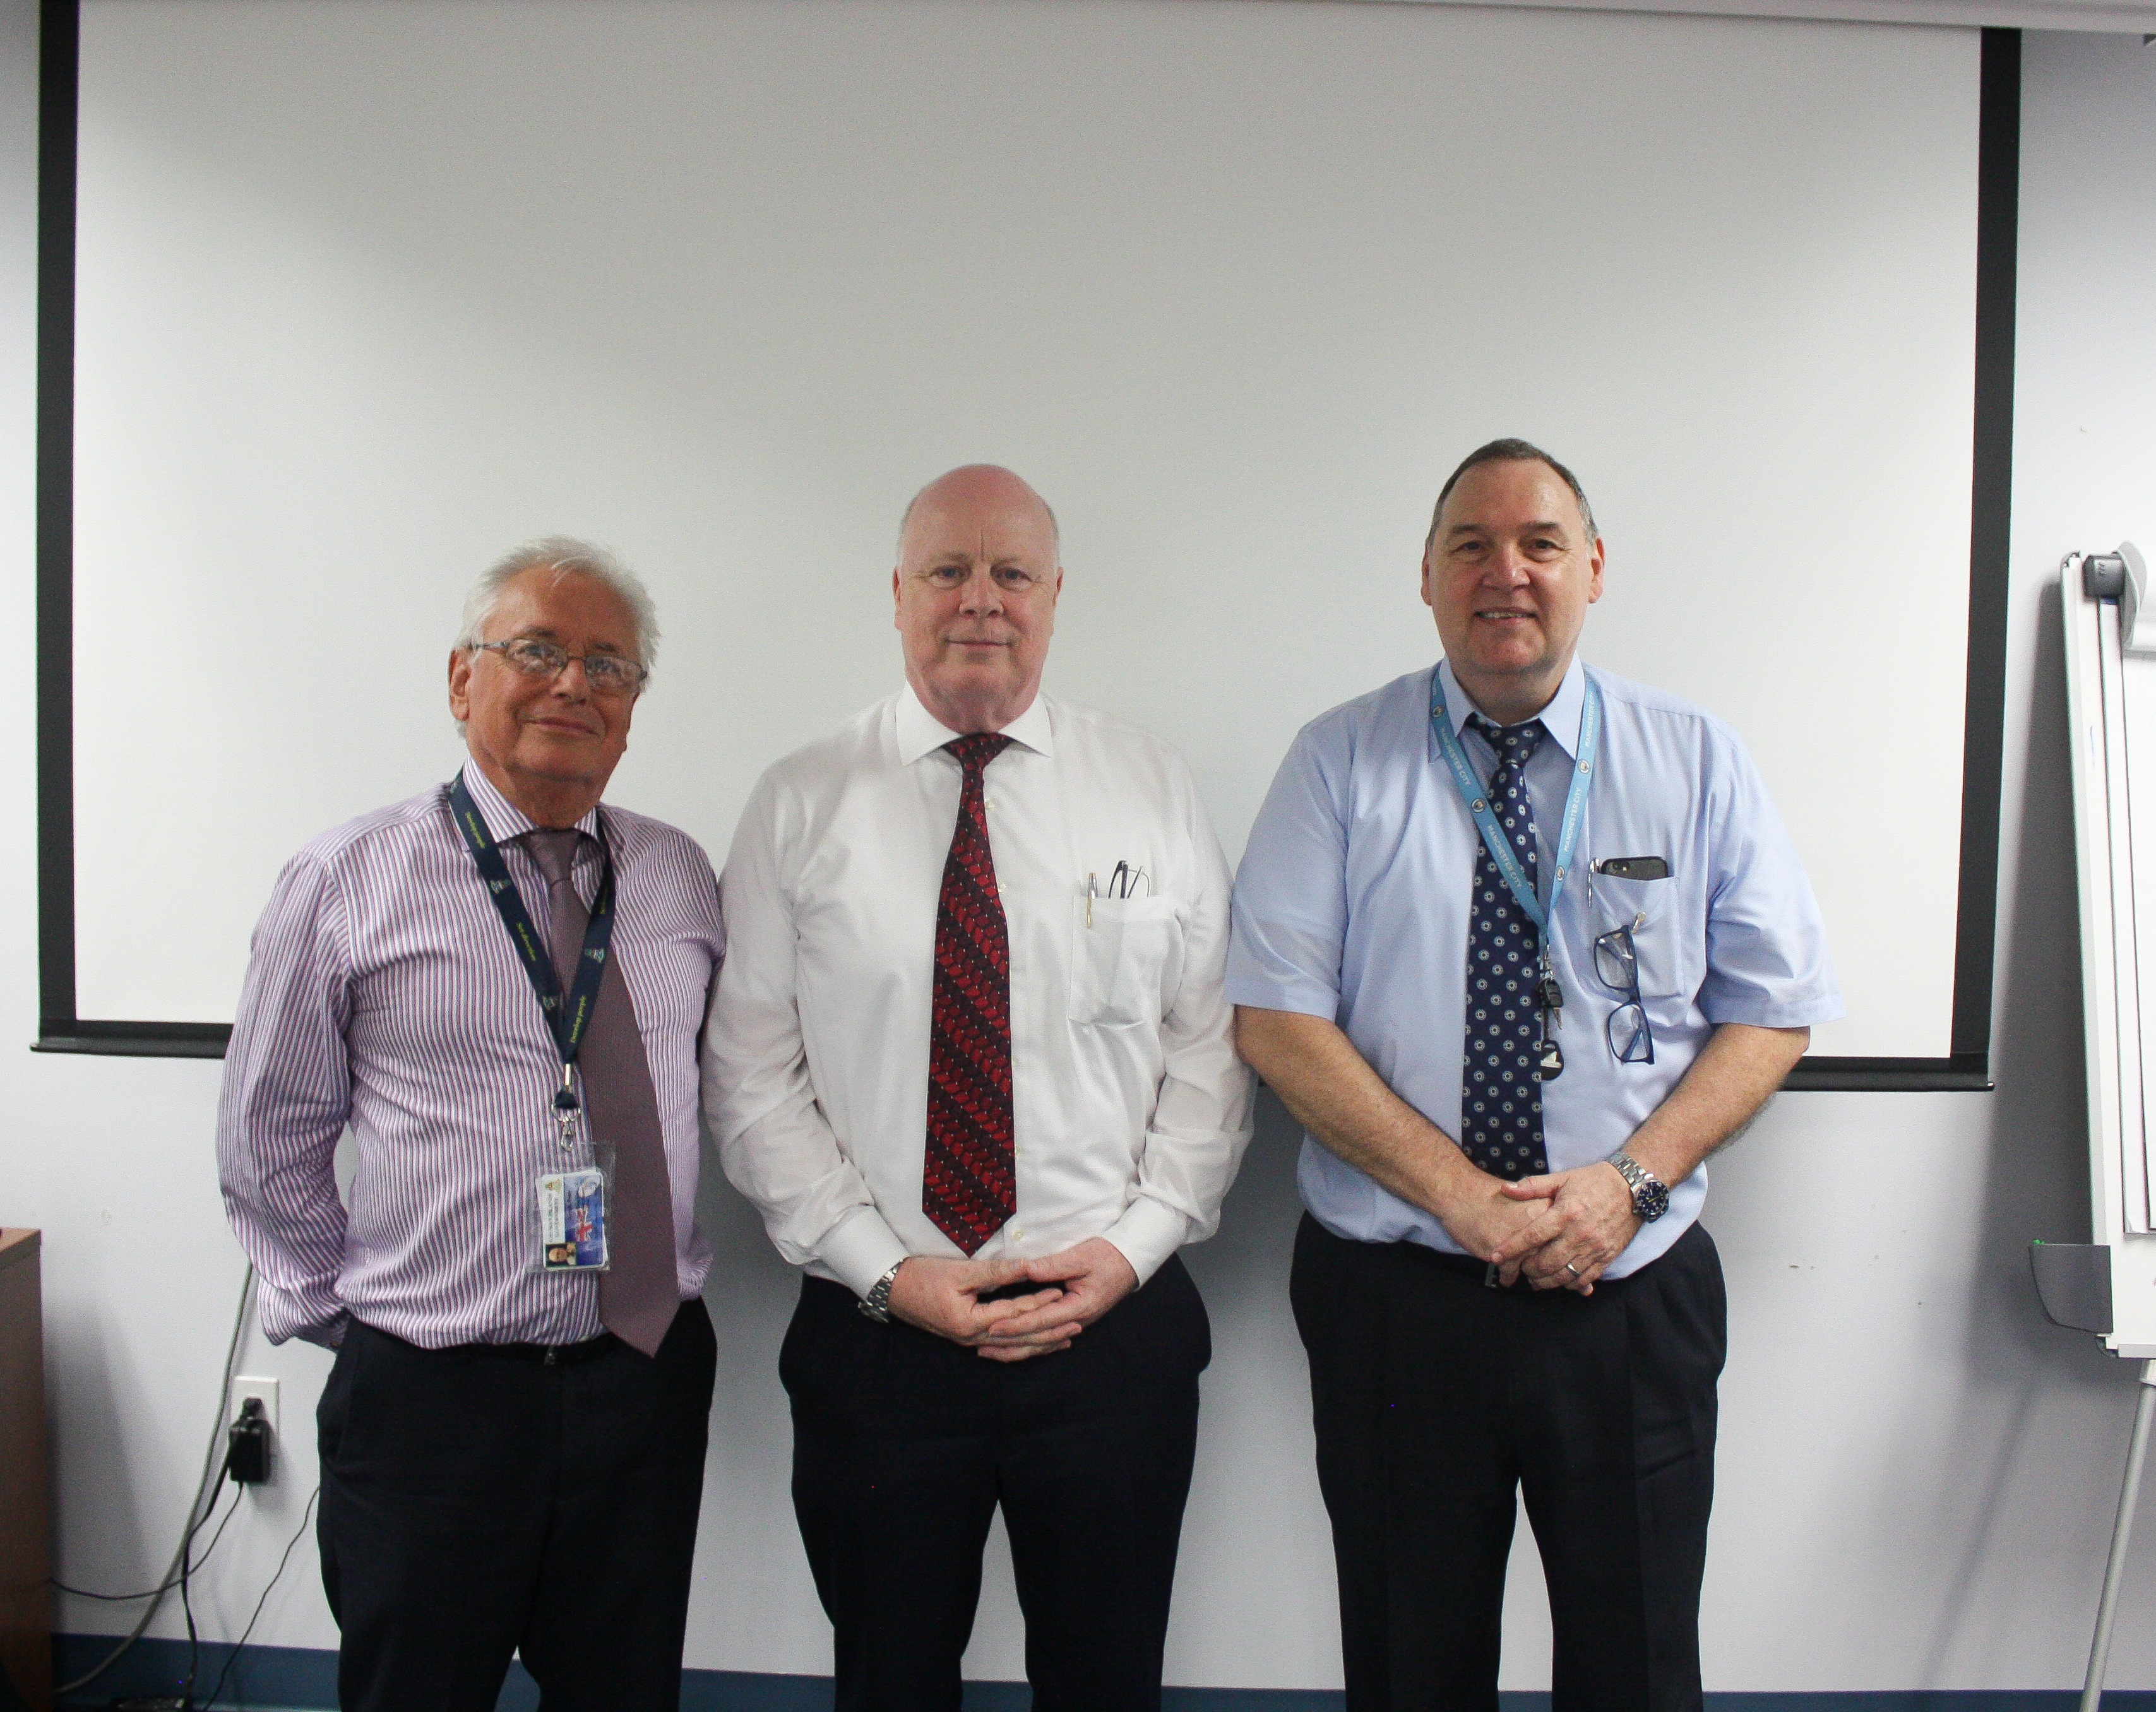 Peter Gough of PoCS, Dennis Walkington of the ODPP, & Peter McLoughlin of the Office of the Ombudsman attended the session